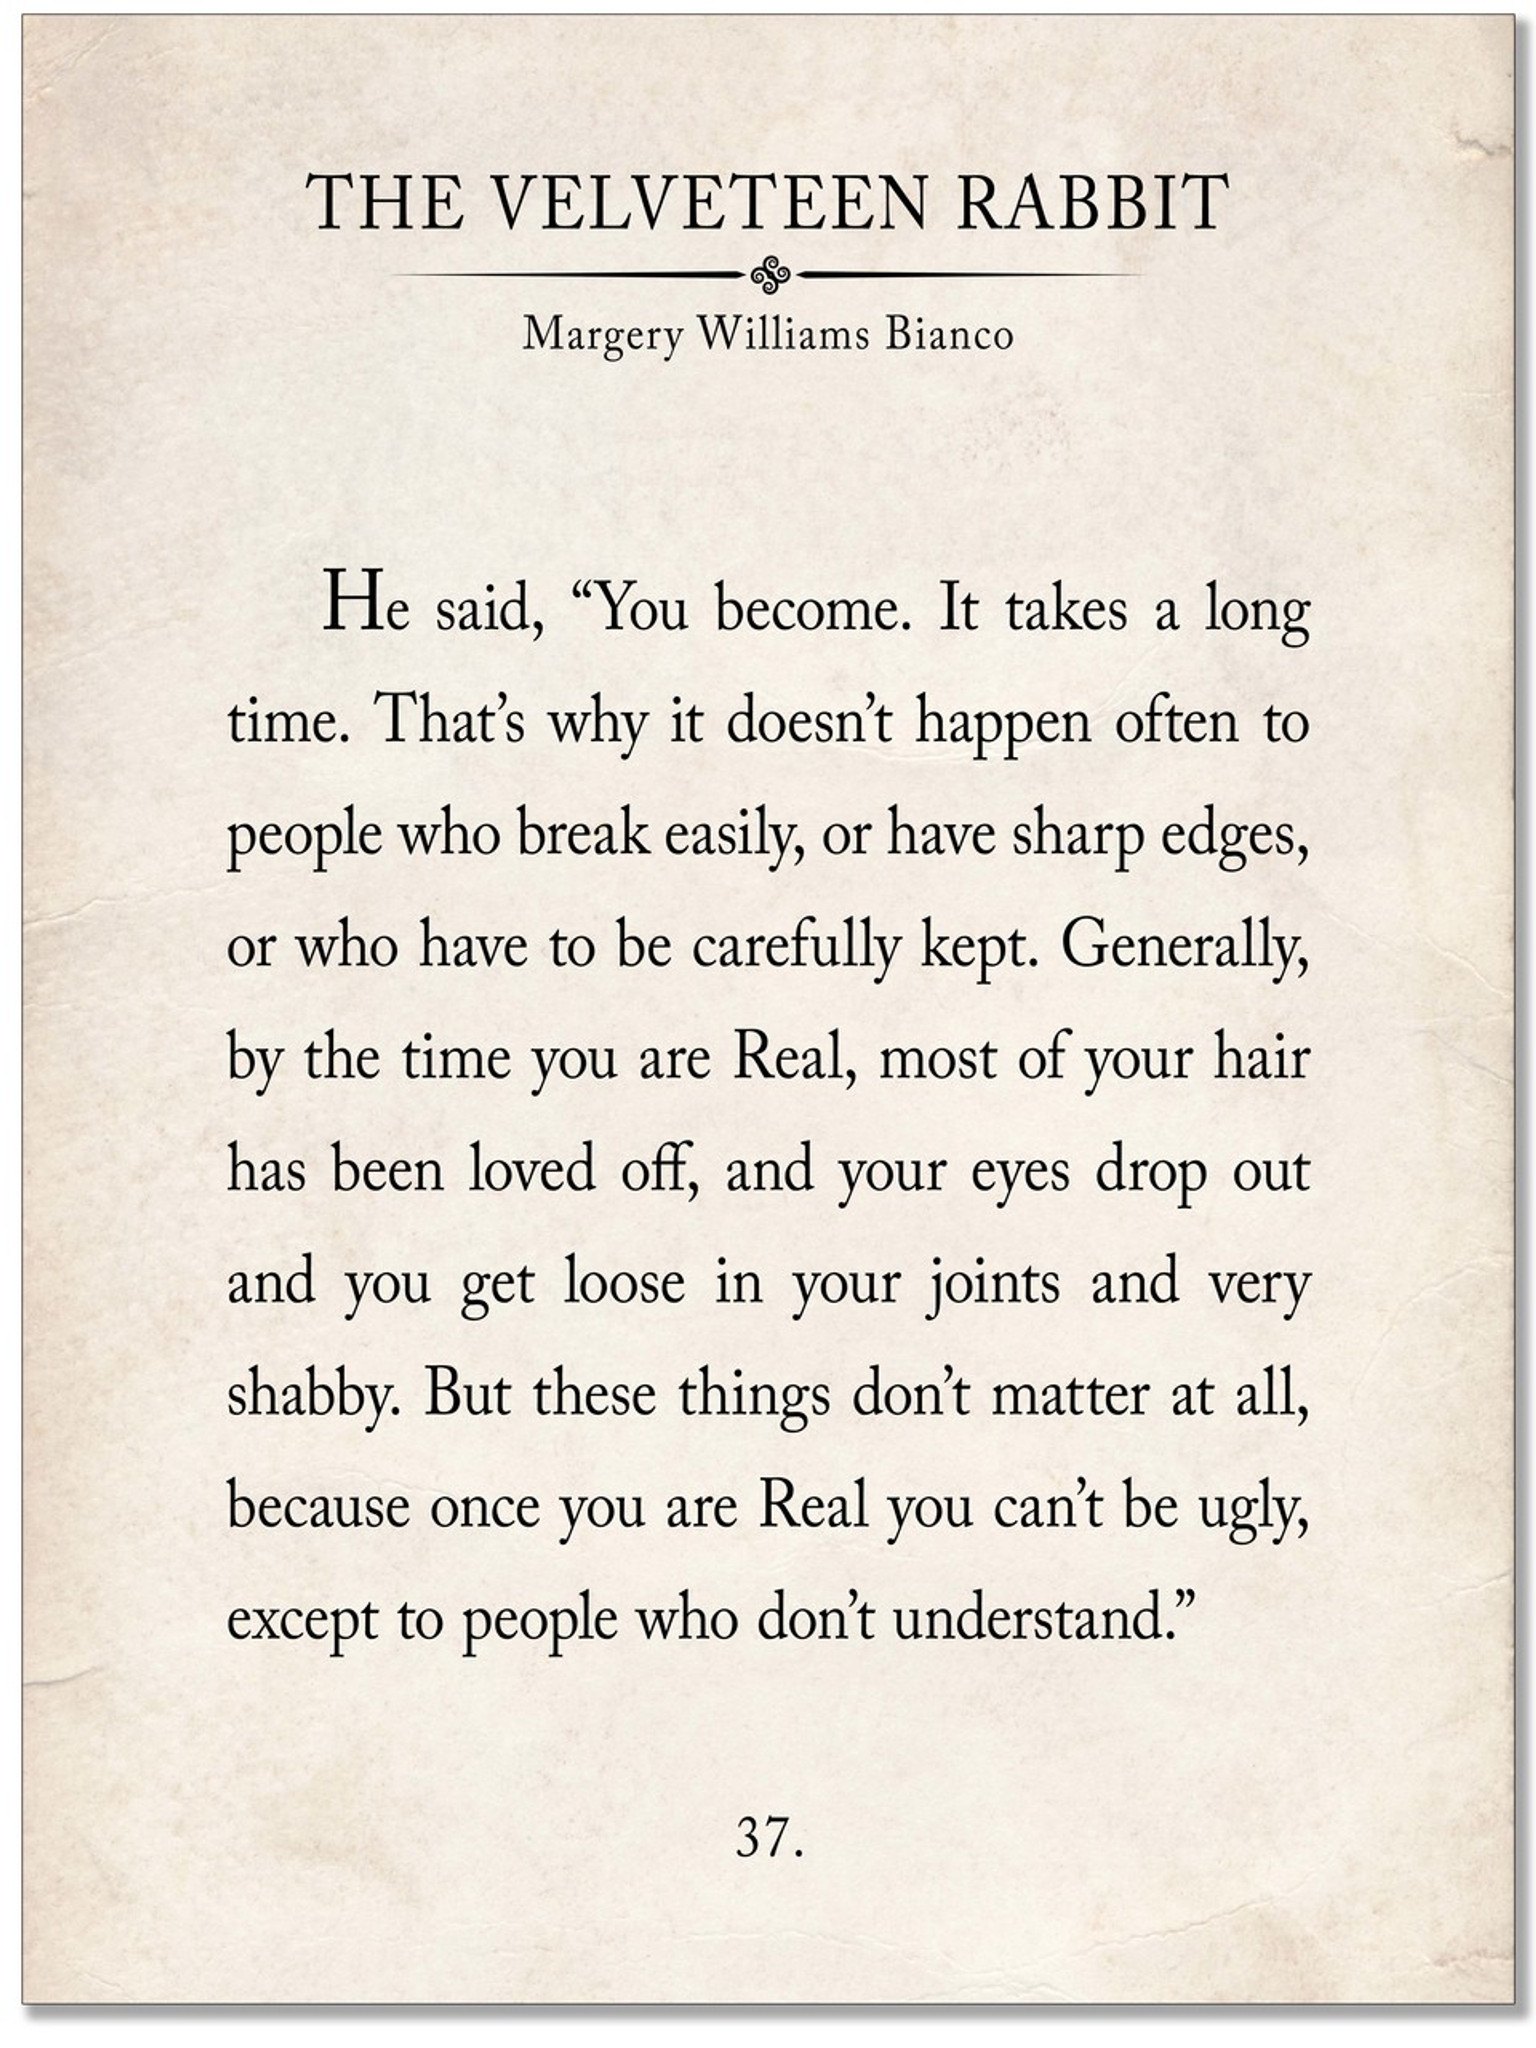 the velveteen rabbit vintage book page literary quote print fine